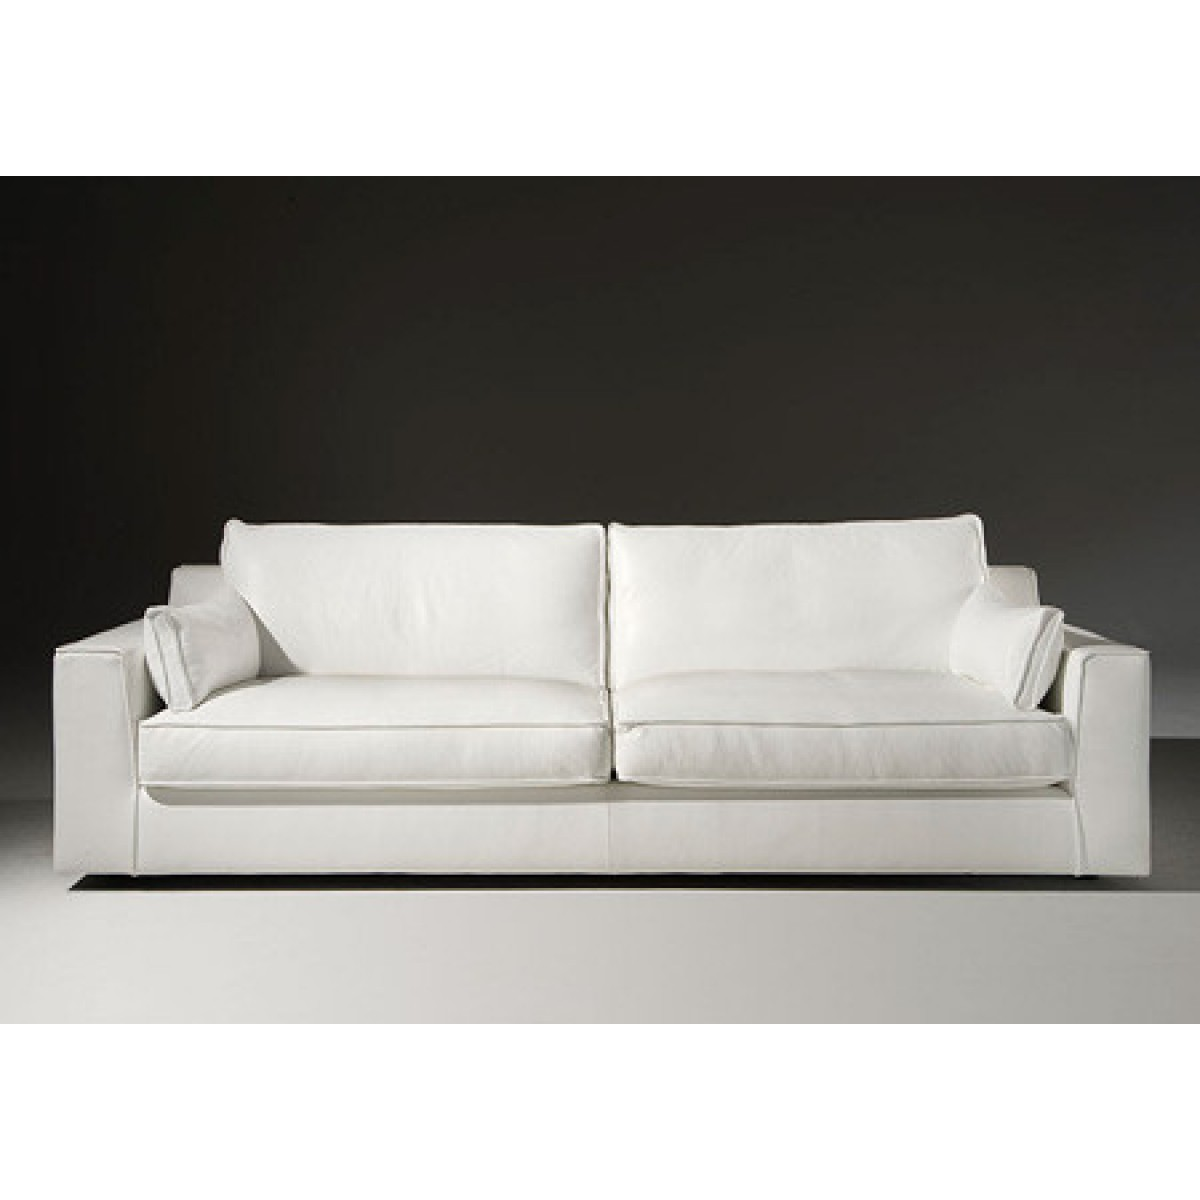 Ledersofa Kaufen Napels Sofa L Ancora Collection